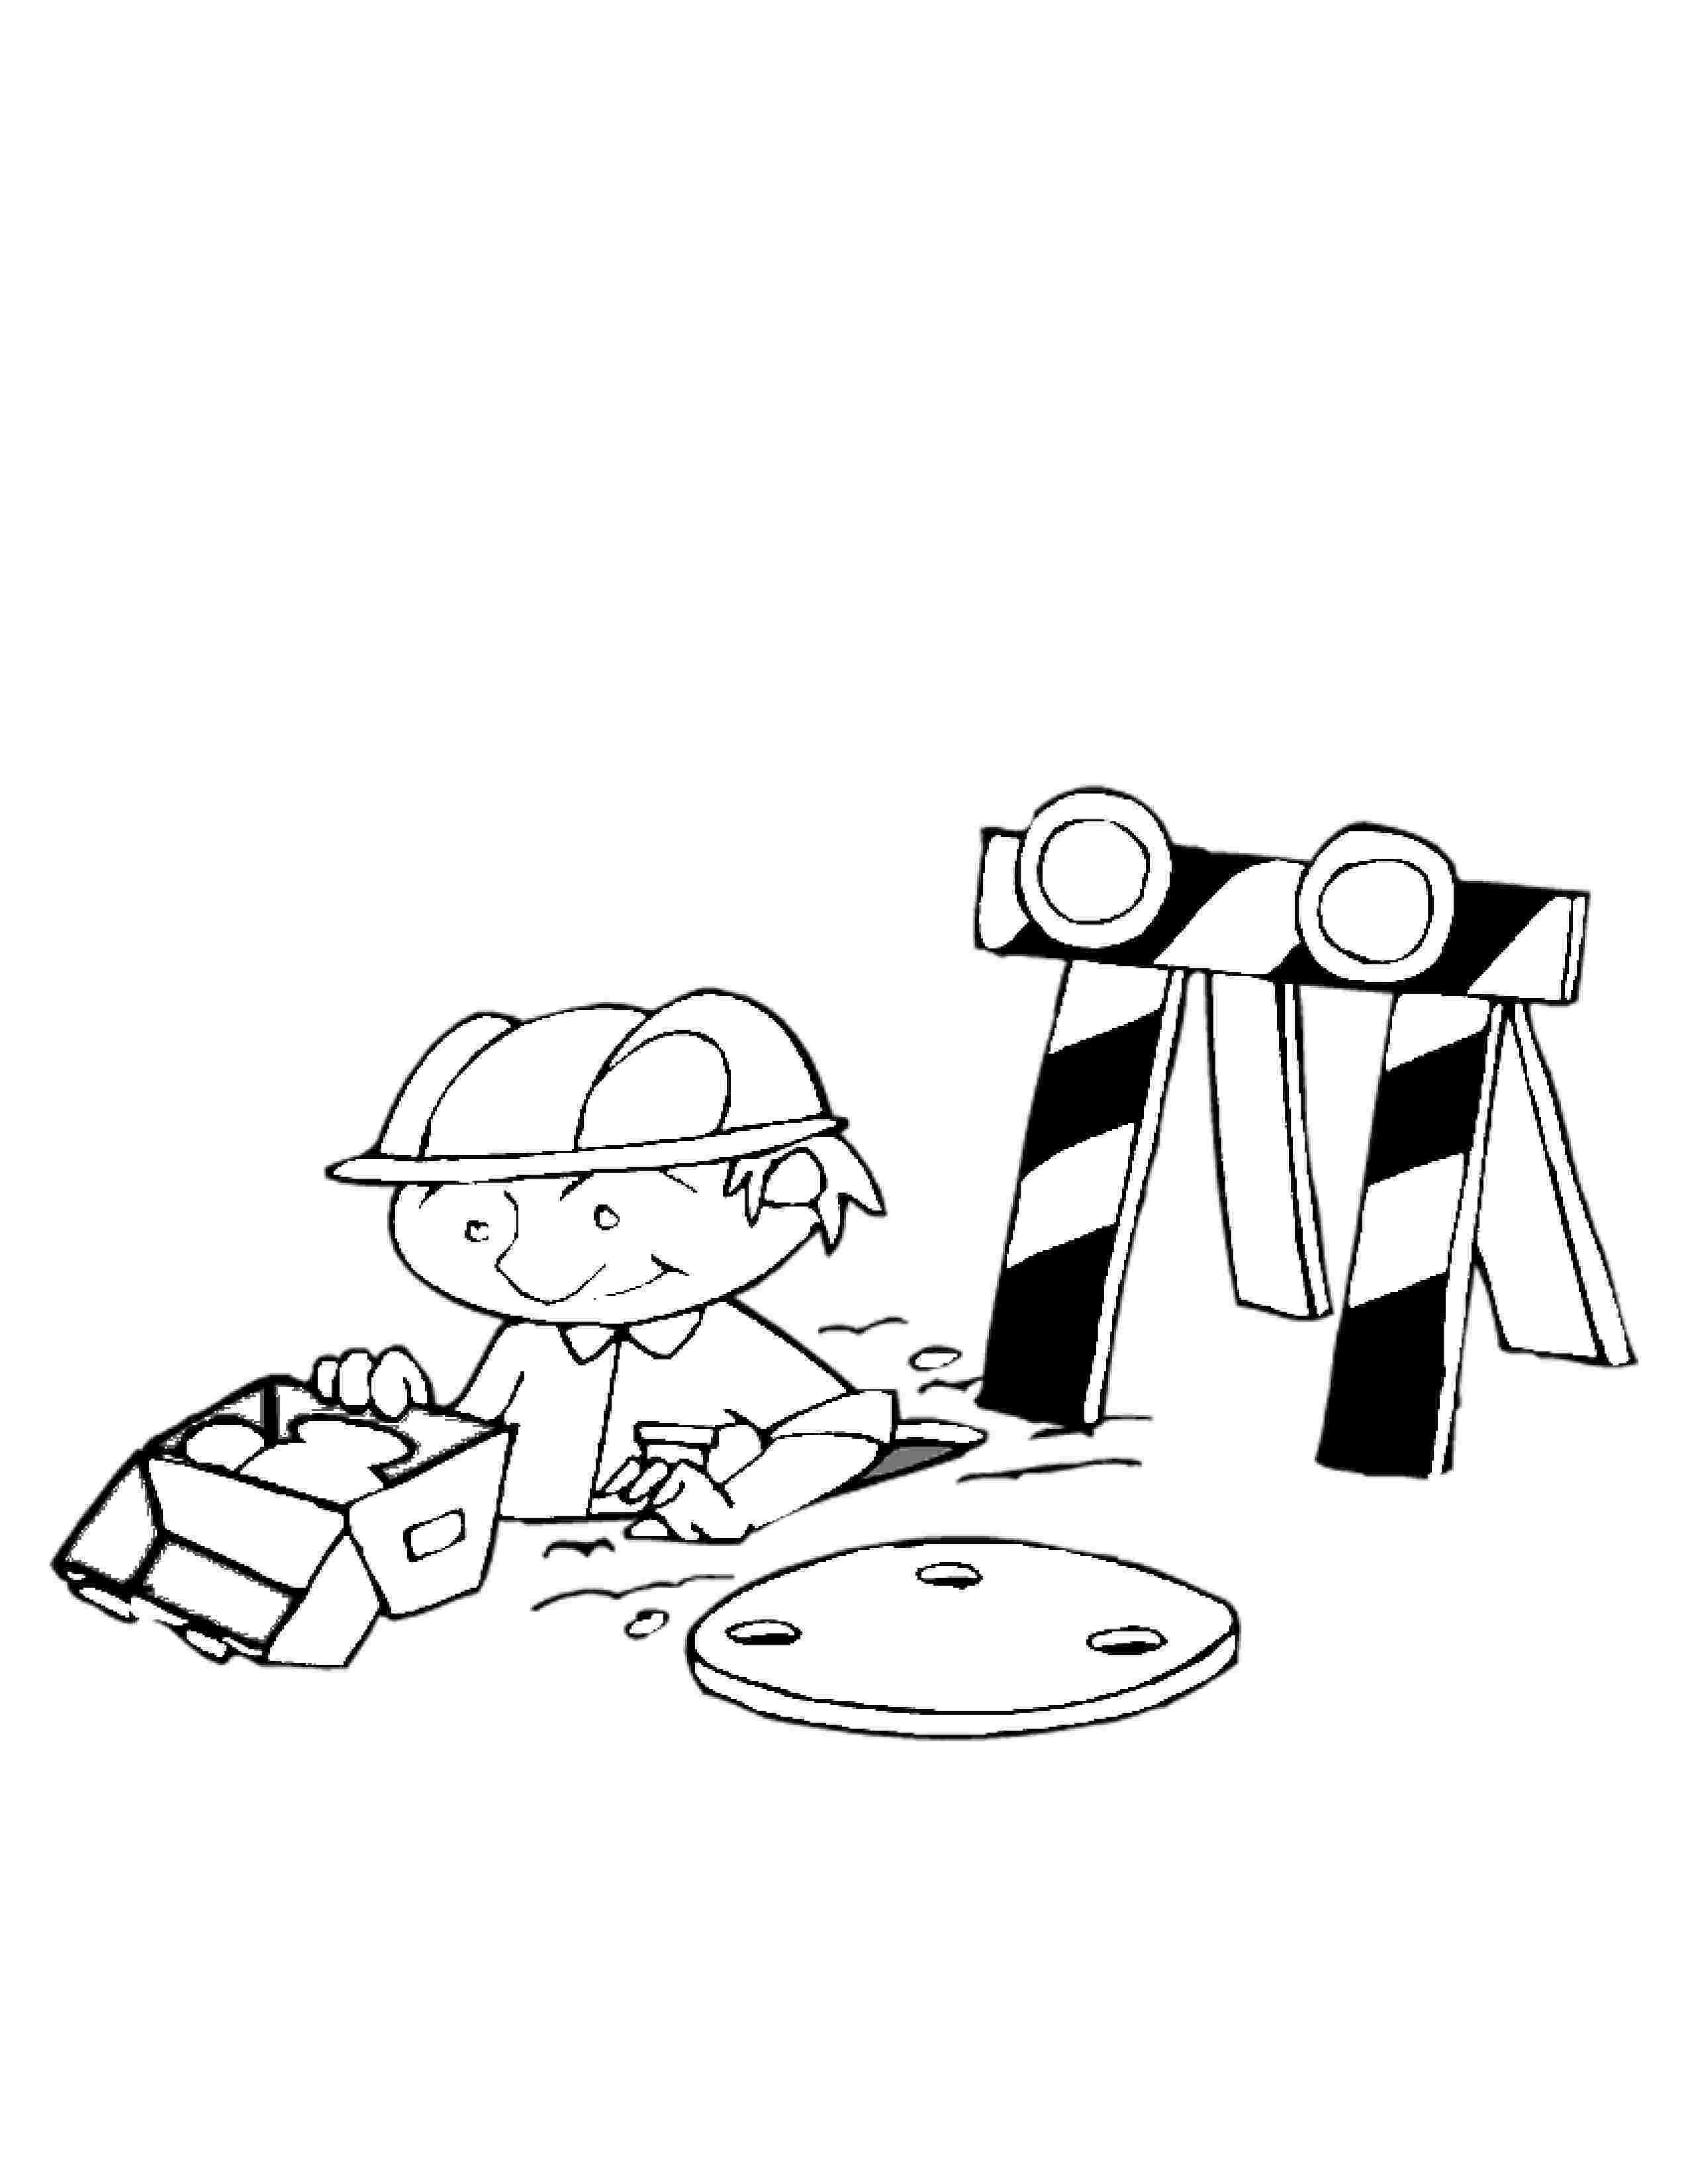 construction equipment coloring pages construction equipment coloring pages coloring home construction coloring pages equipment